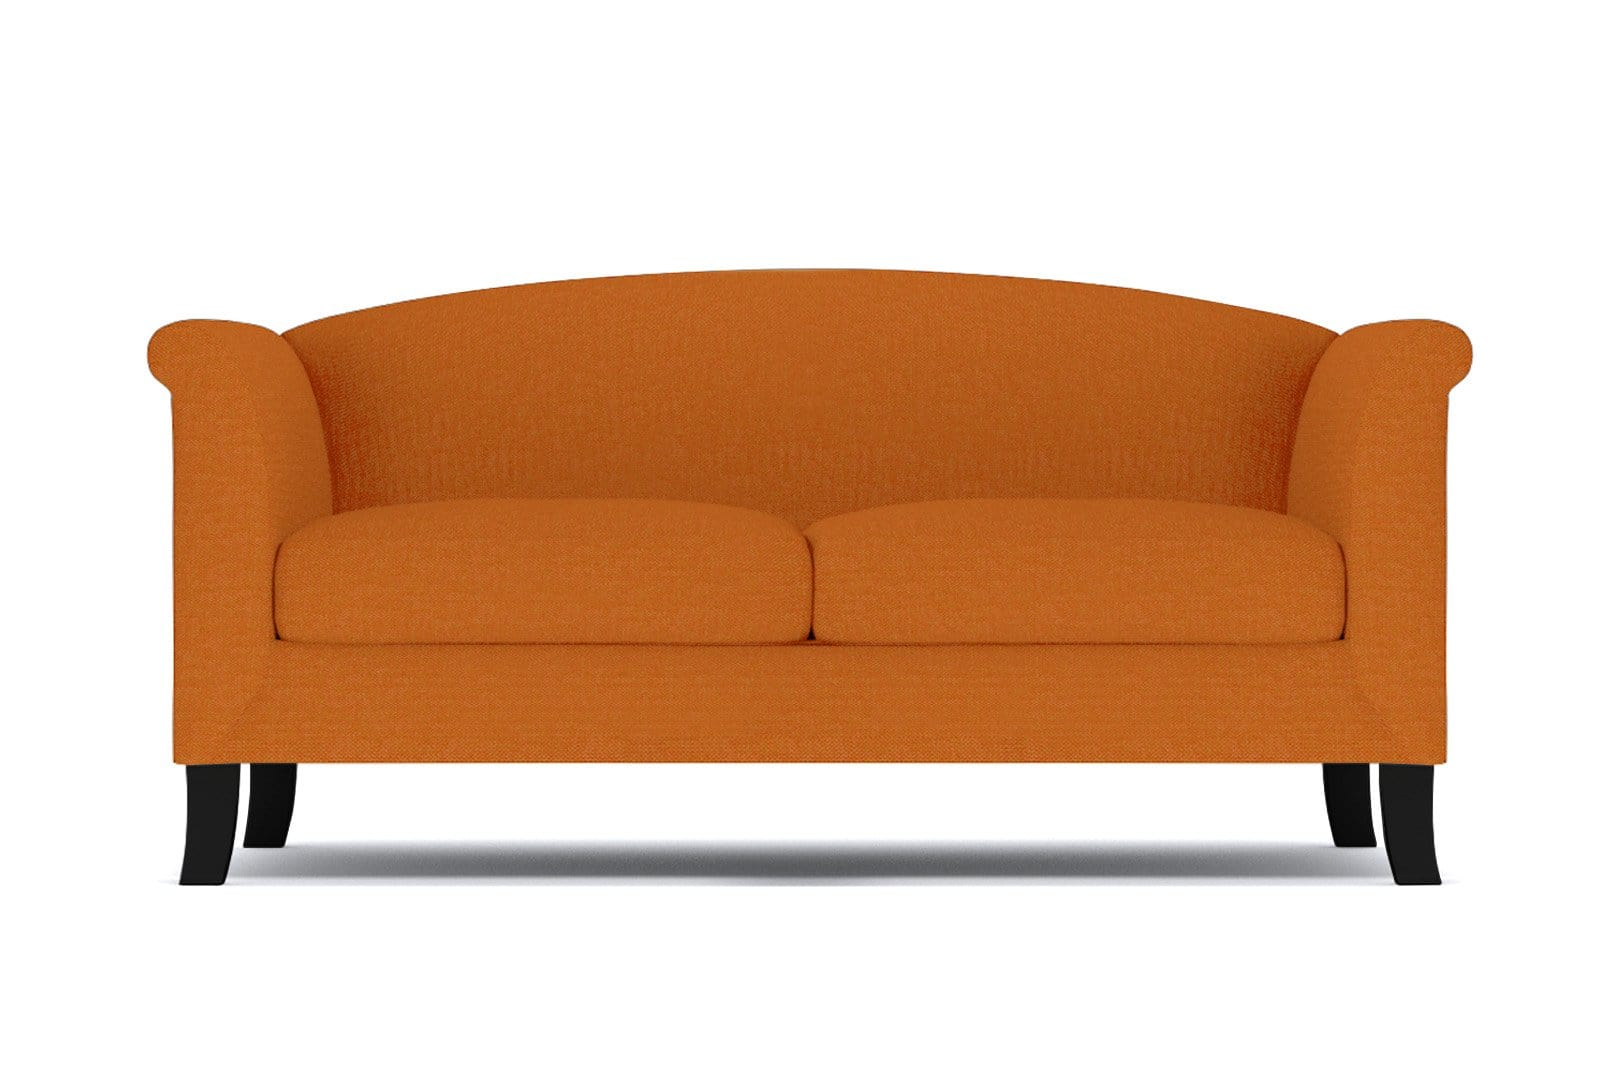 Albright_Apartment_Size_Sofa__Orange___Small_Space_Modern_Couch_Made_in_the_USA__Sold_by_Apt2B